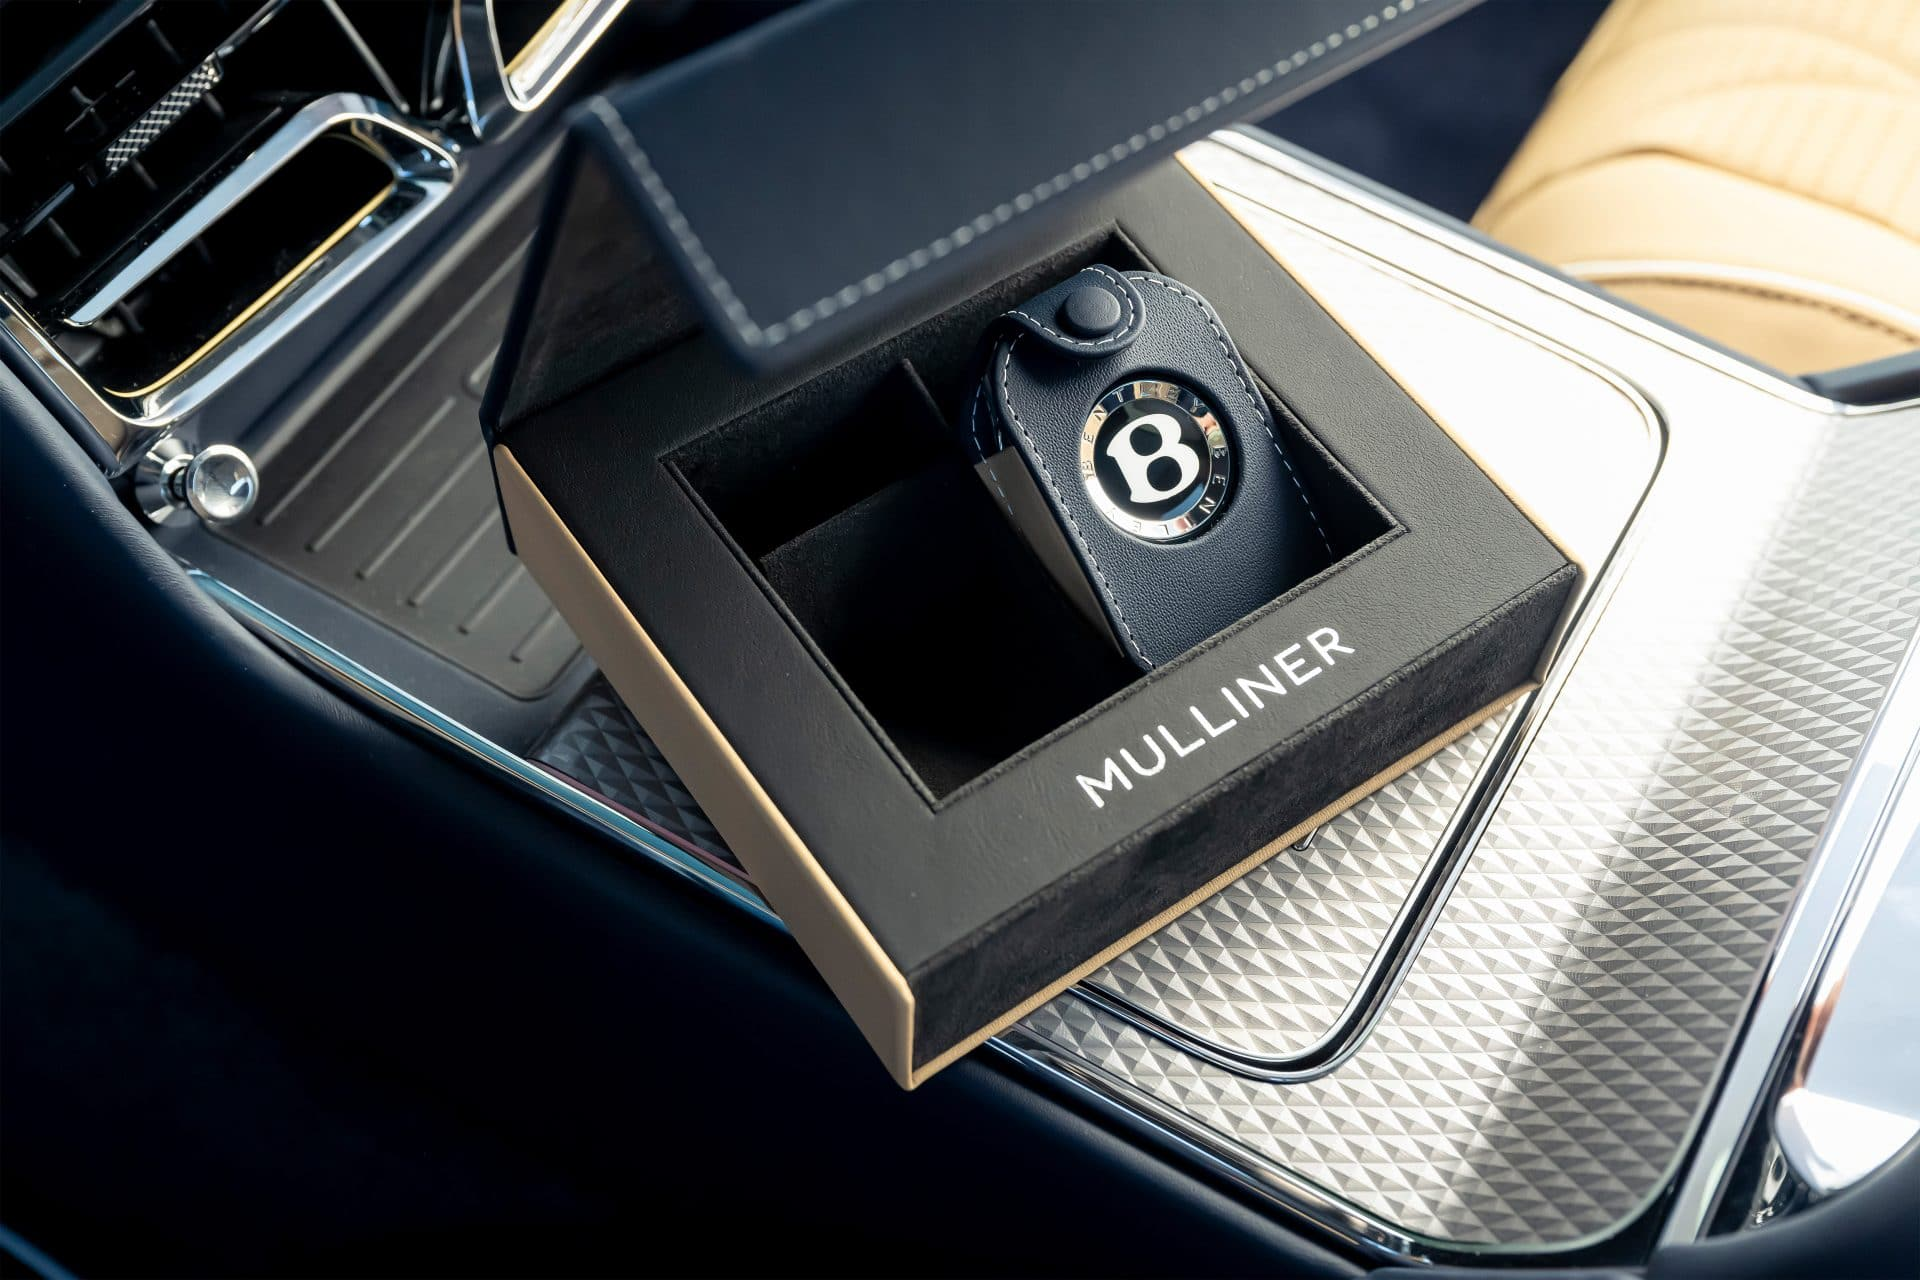 Flying Spur Mulliner 8 BENTLEY FLYING SPUR MULLINER : Κορυφαία εμπειρία Grand Touring